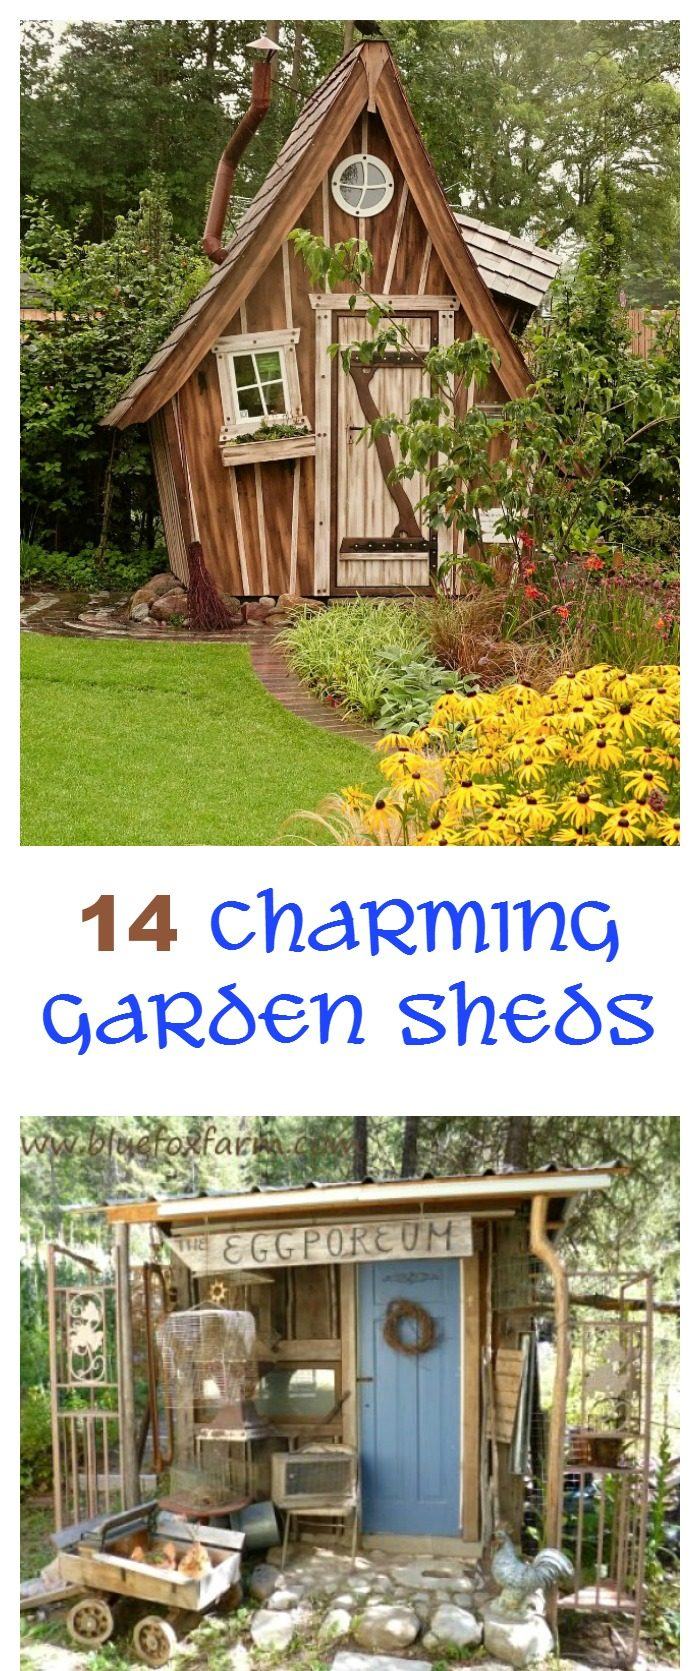 Two cute garden sheds decorated in a collage with words reading 14 Charming Garden Sheds.